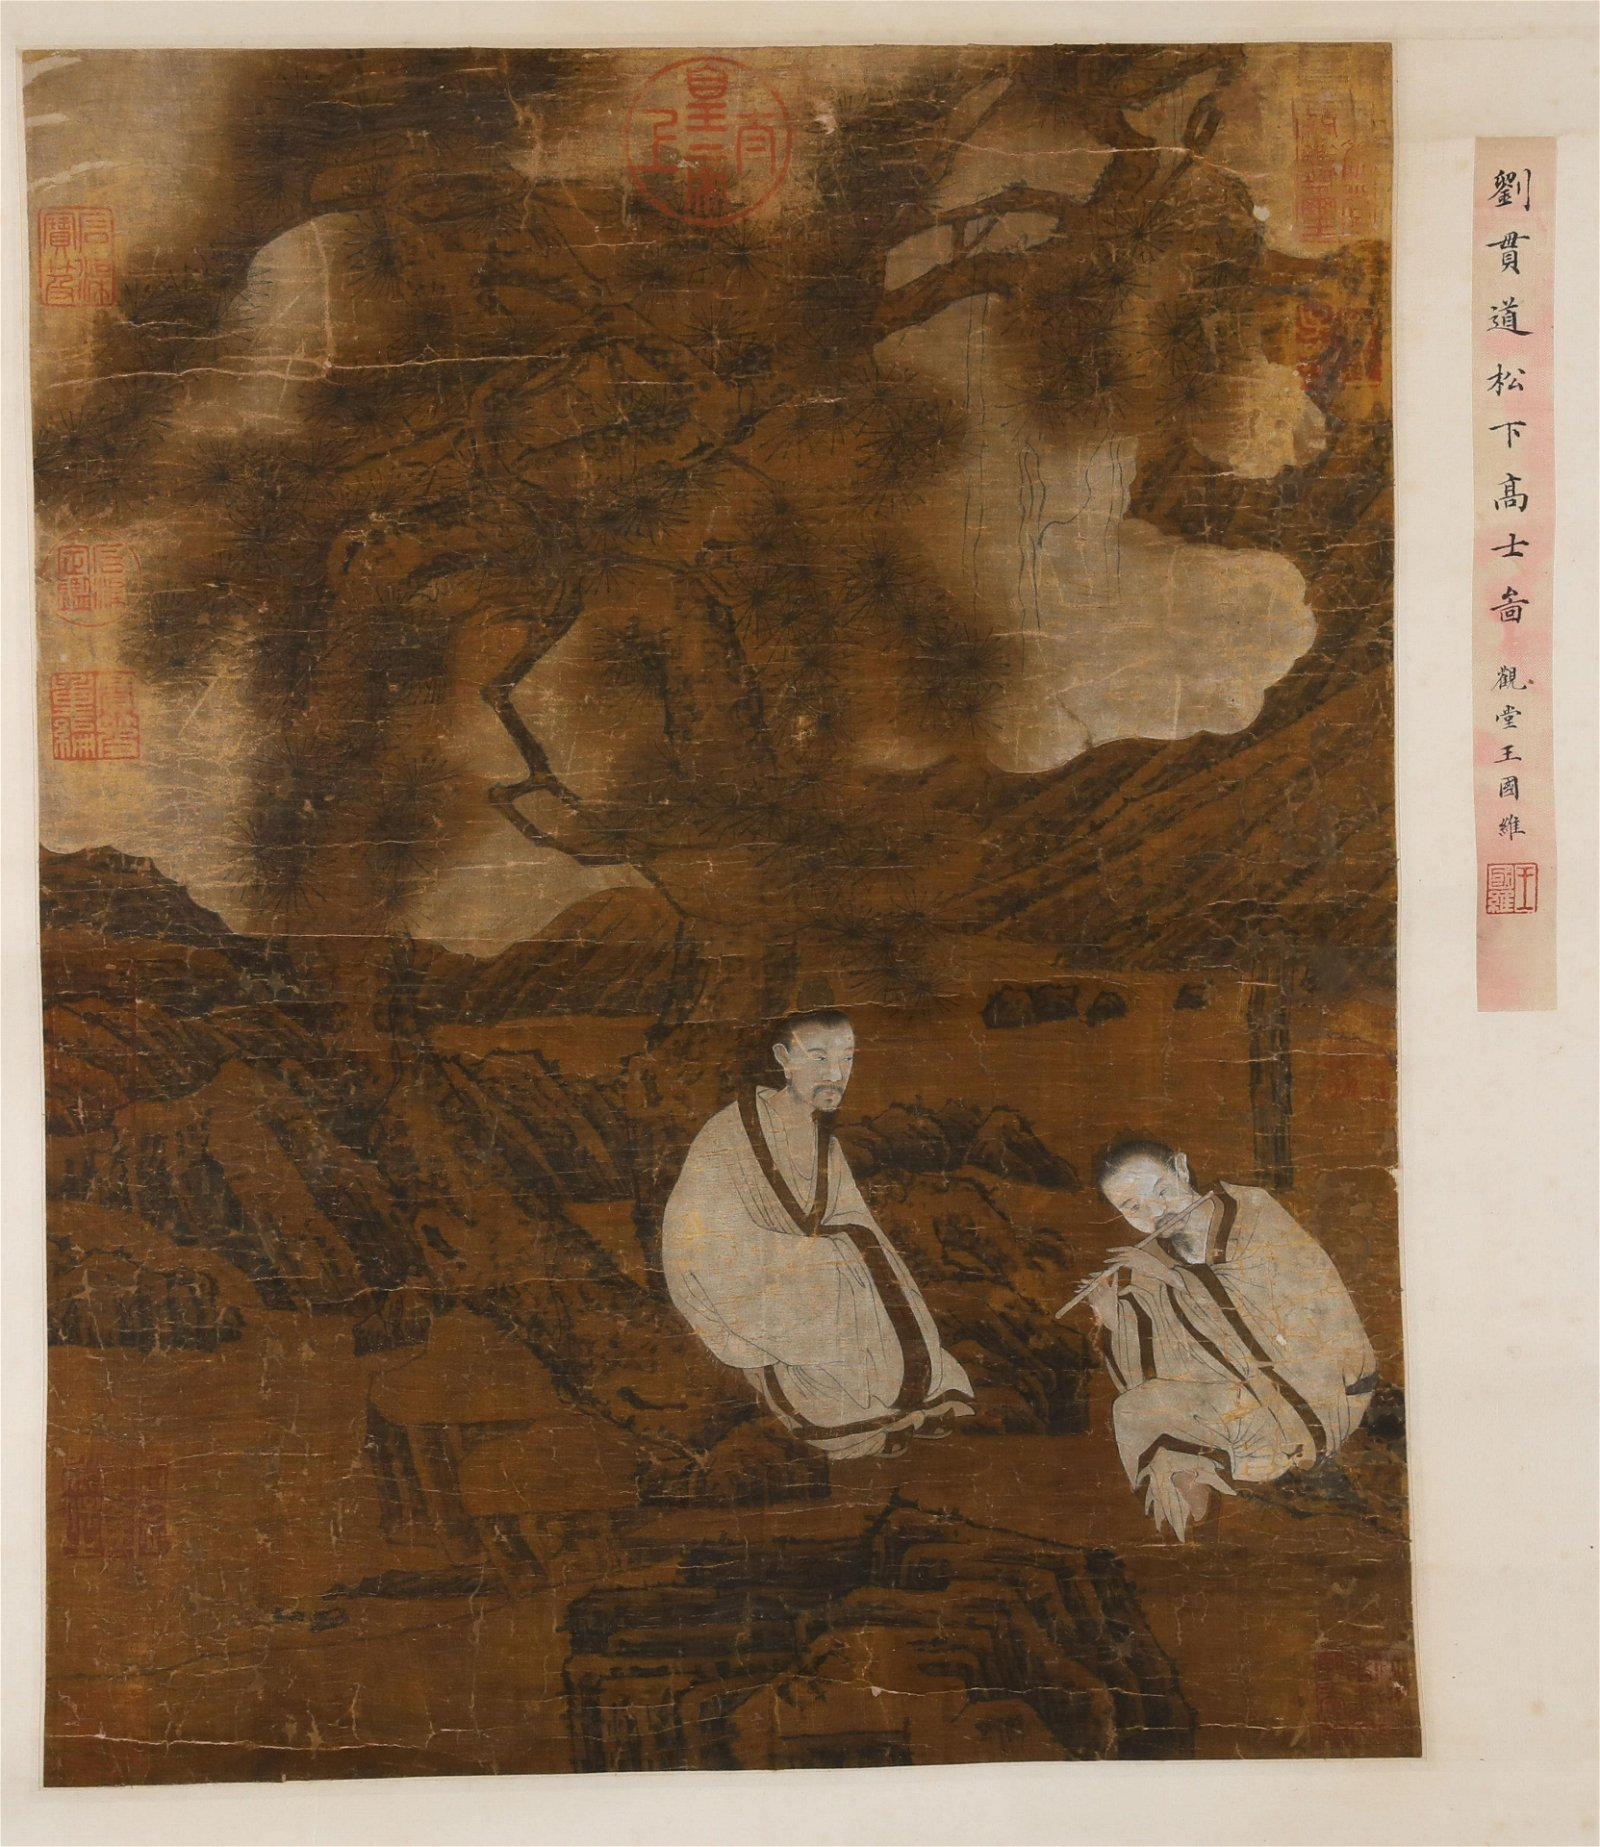 A Fine Chinese Hand-drawn Painting Scroll Signed by Liu